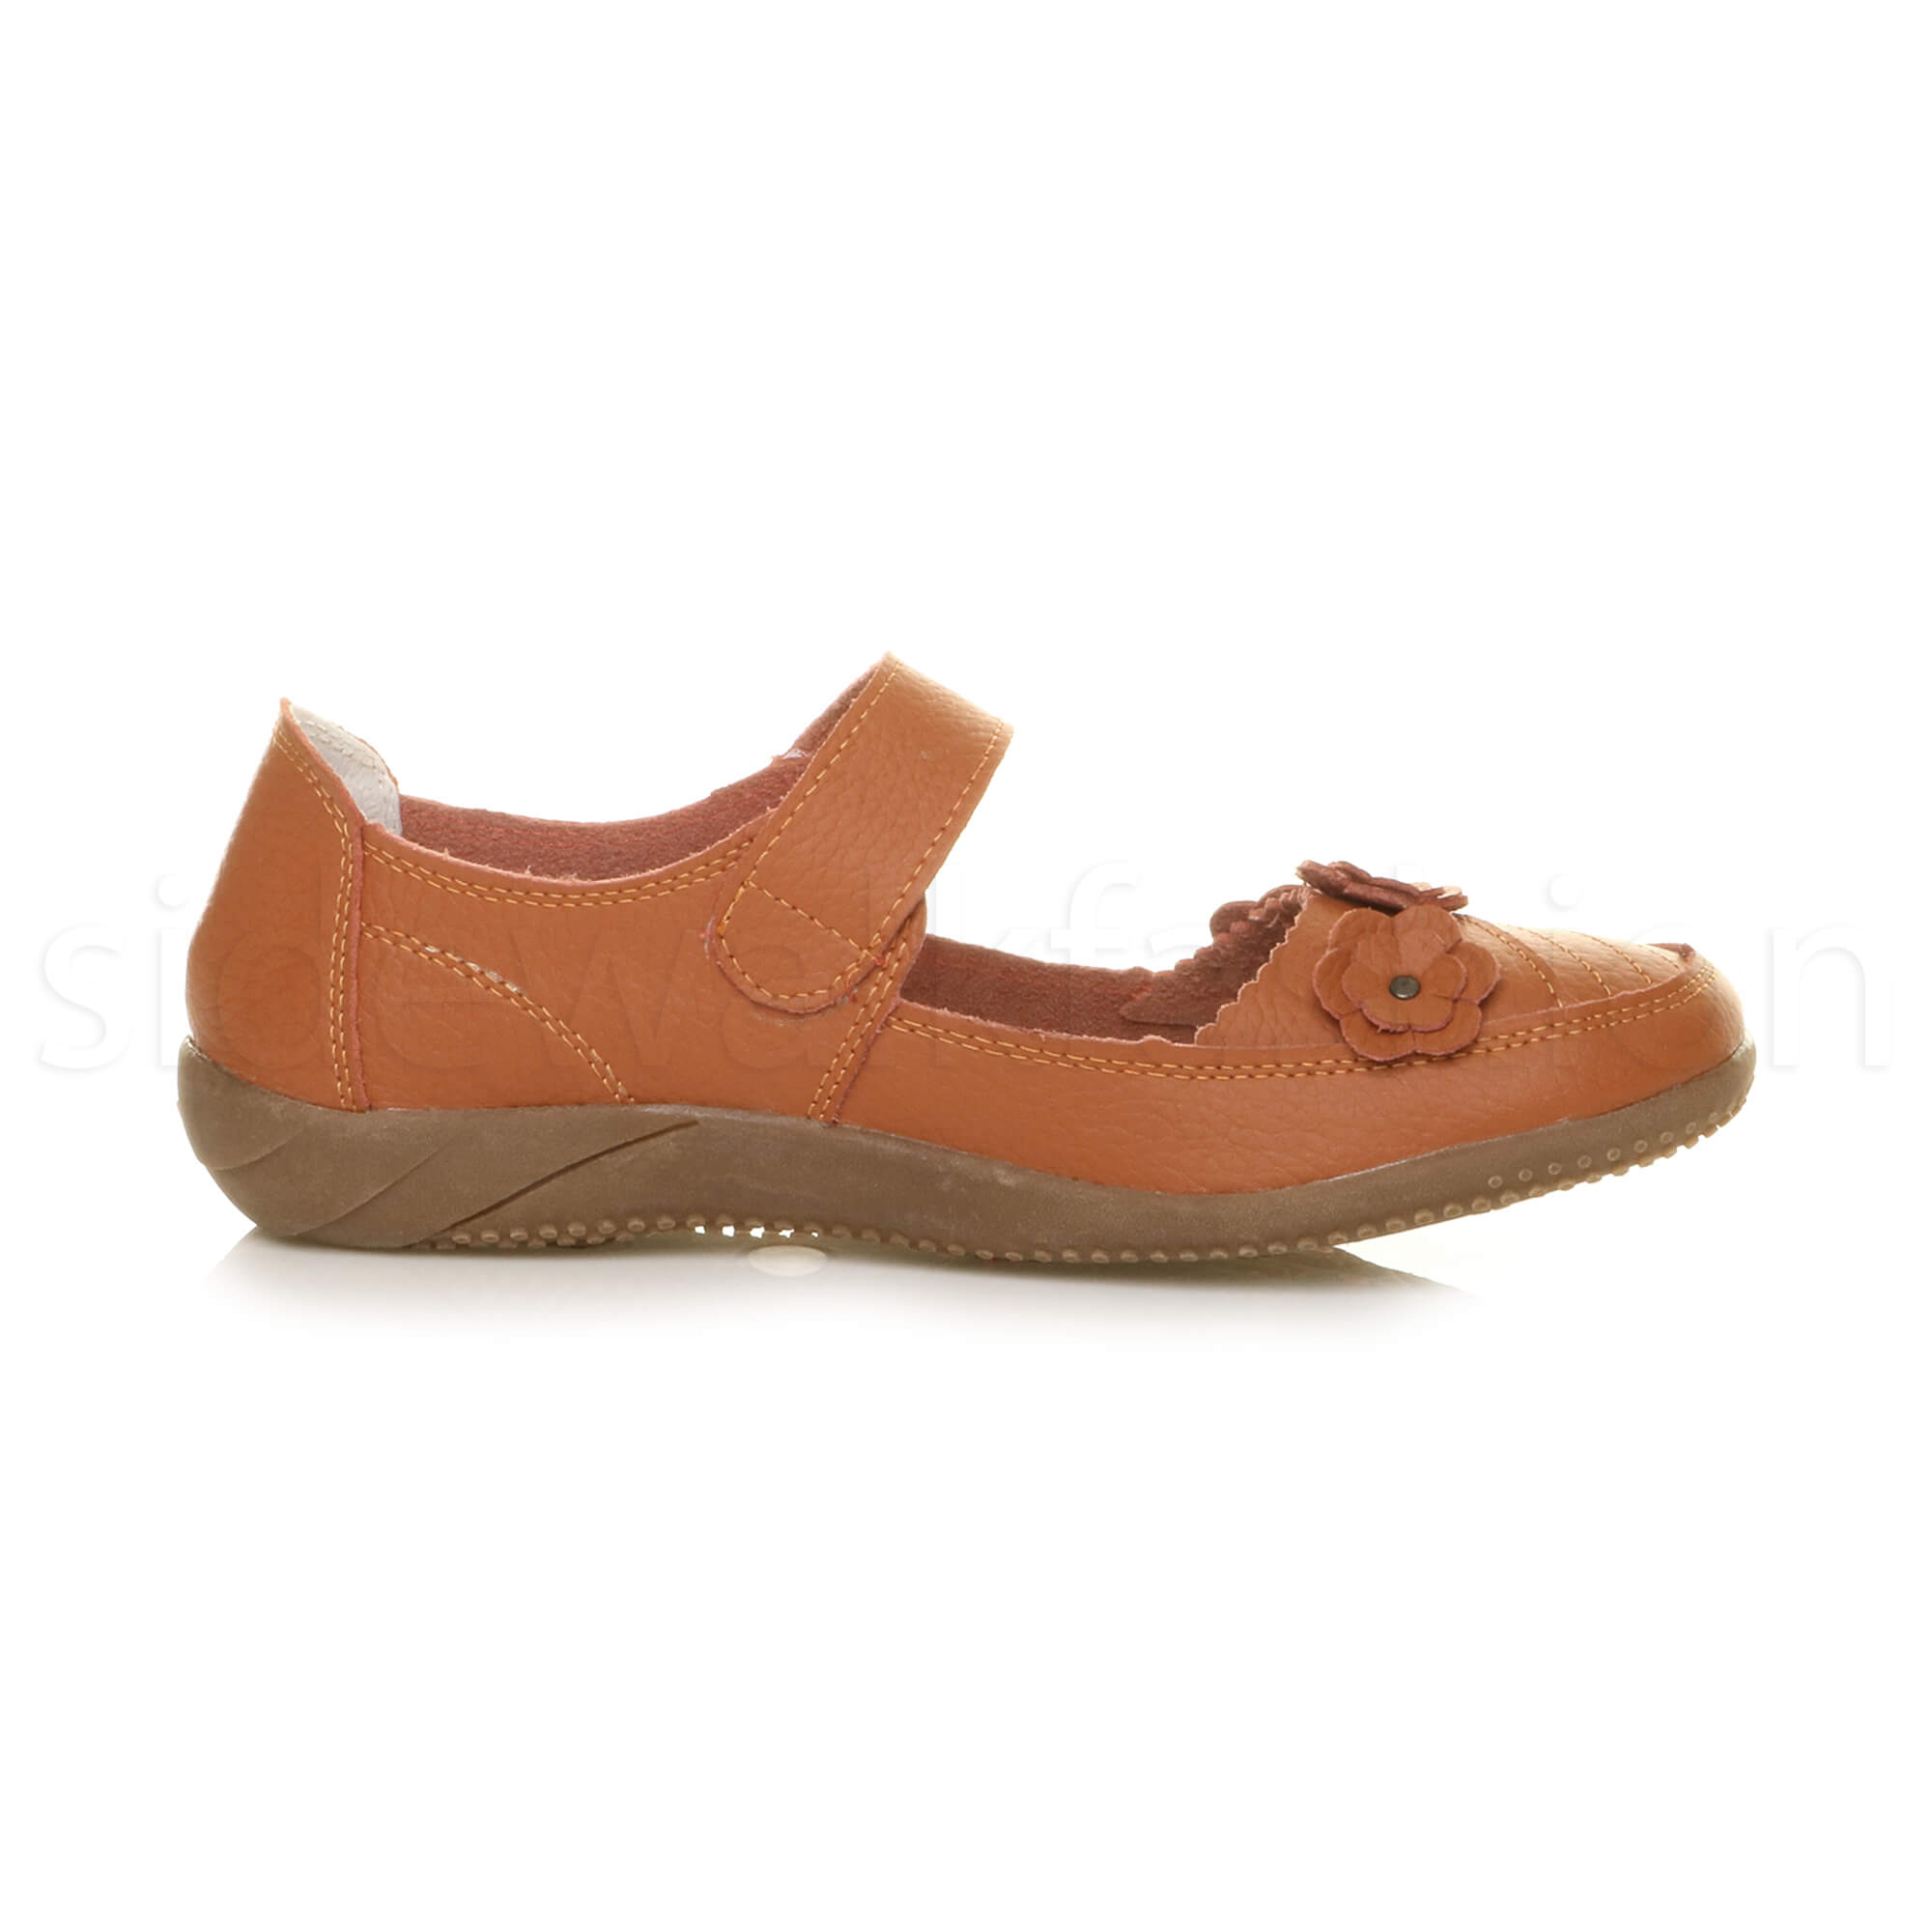 Womens-ladies-leather-comfort-walking-casual-sandals-mary-jane-strap-shoes-size thumbnail 14